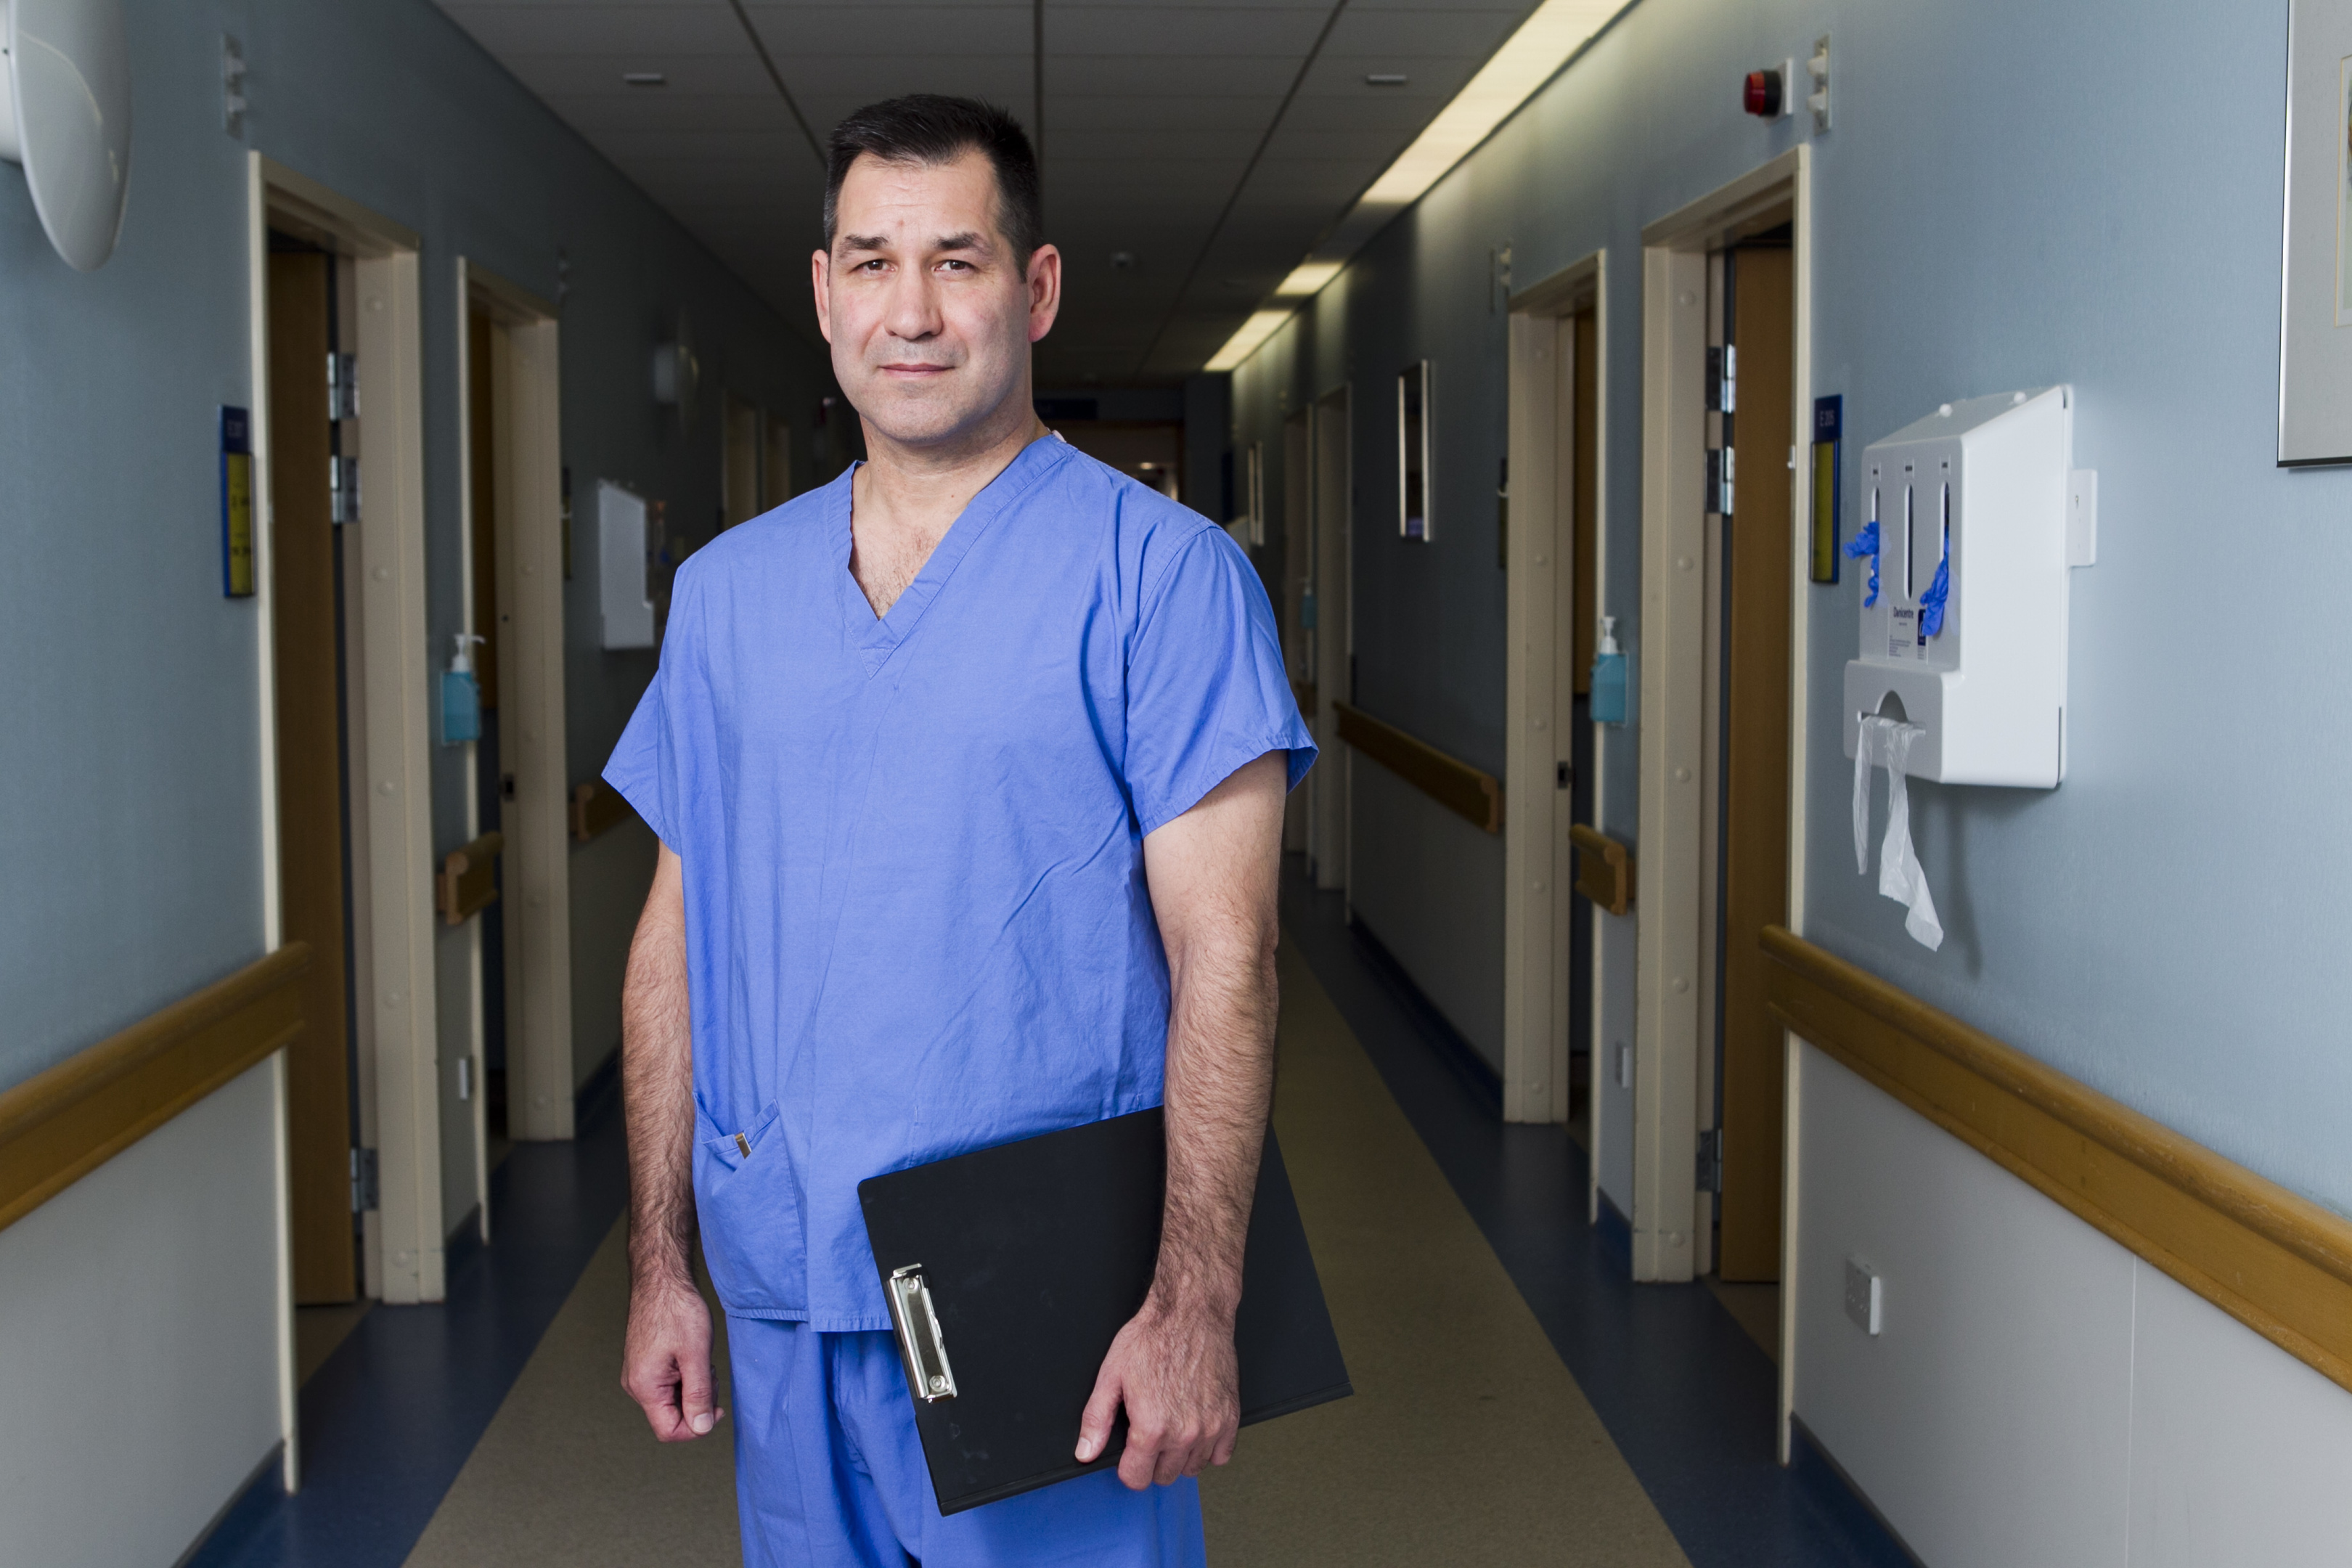 Former US Army medic Jon Stubblefield now works at the Golden Jubilee Hospital, Clydebank (Andrew Cawley / DC Thomson)